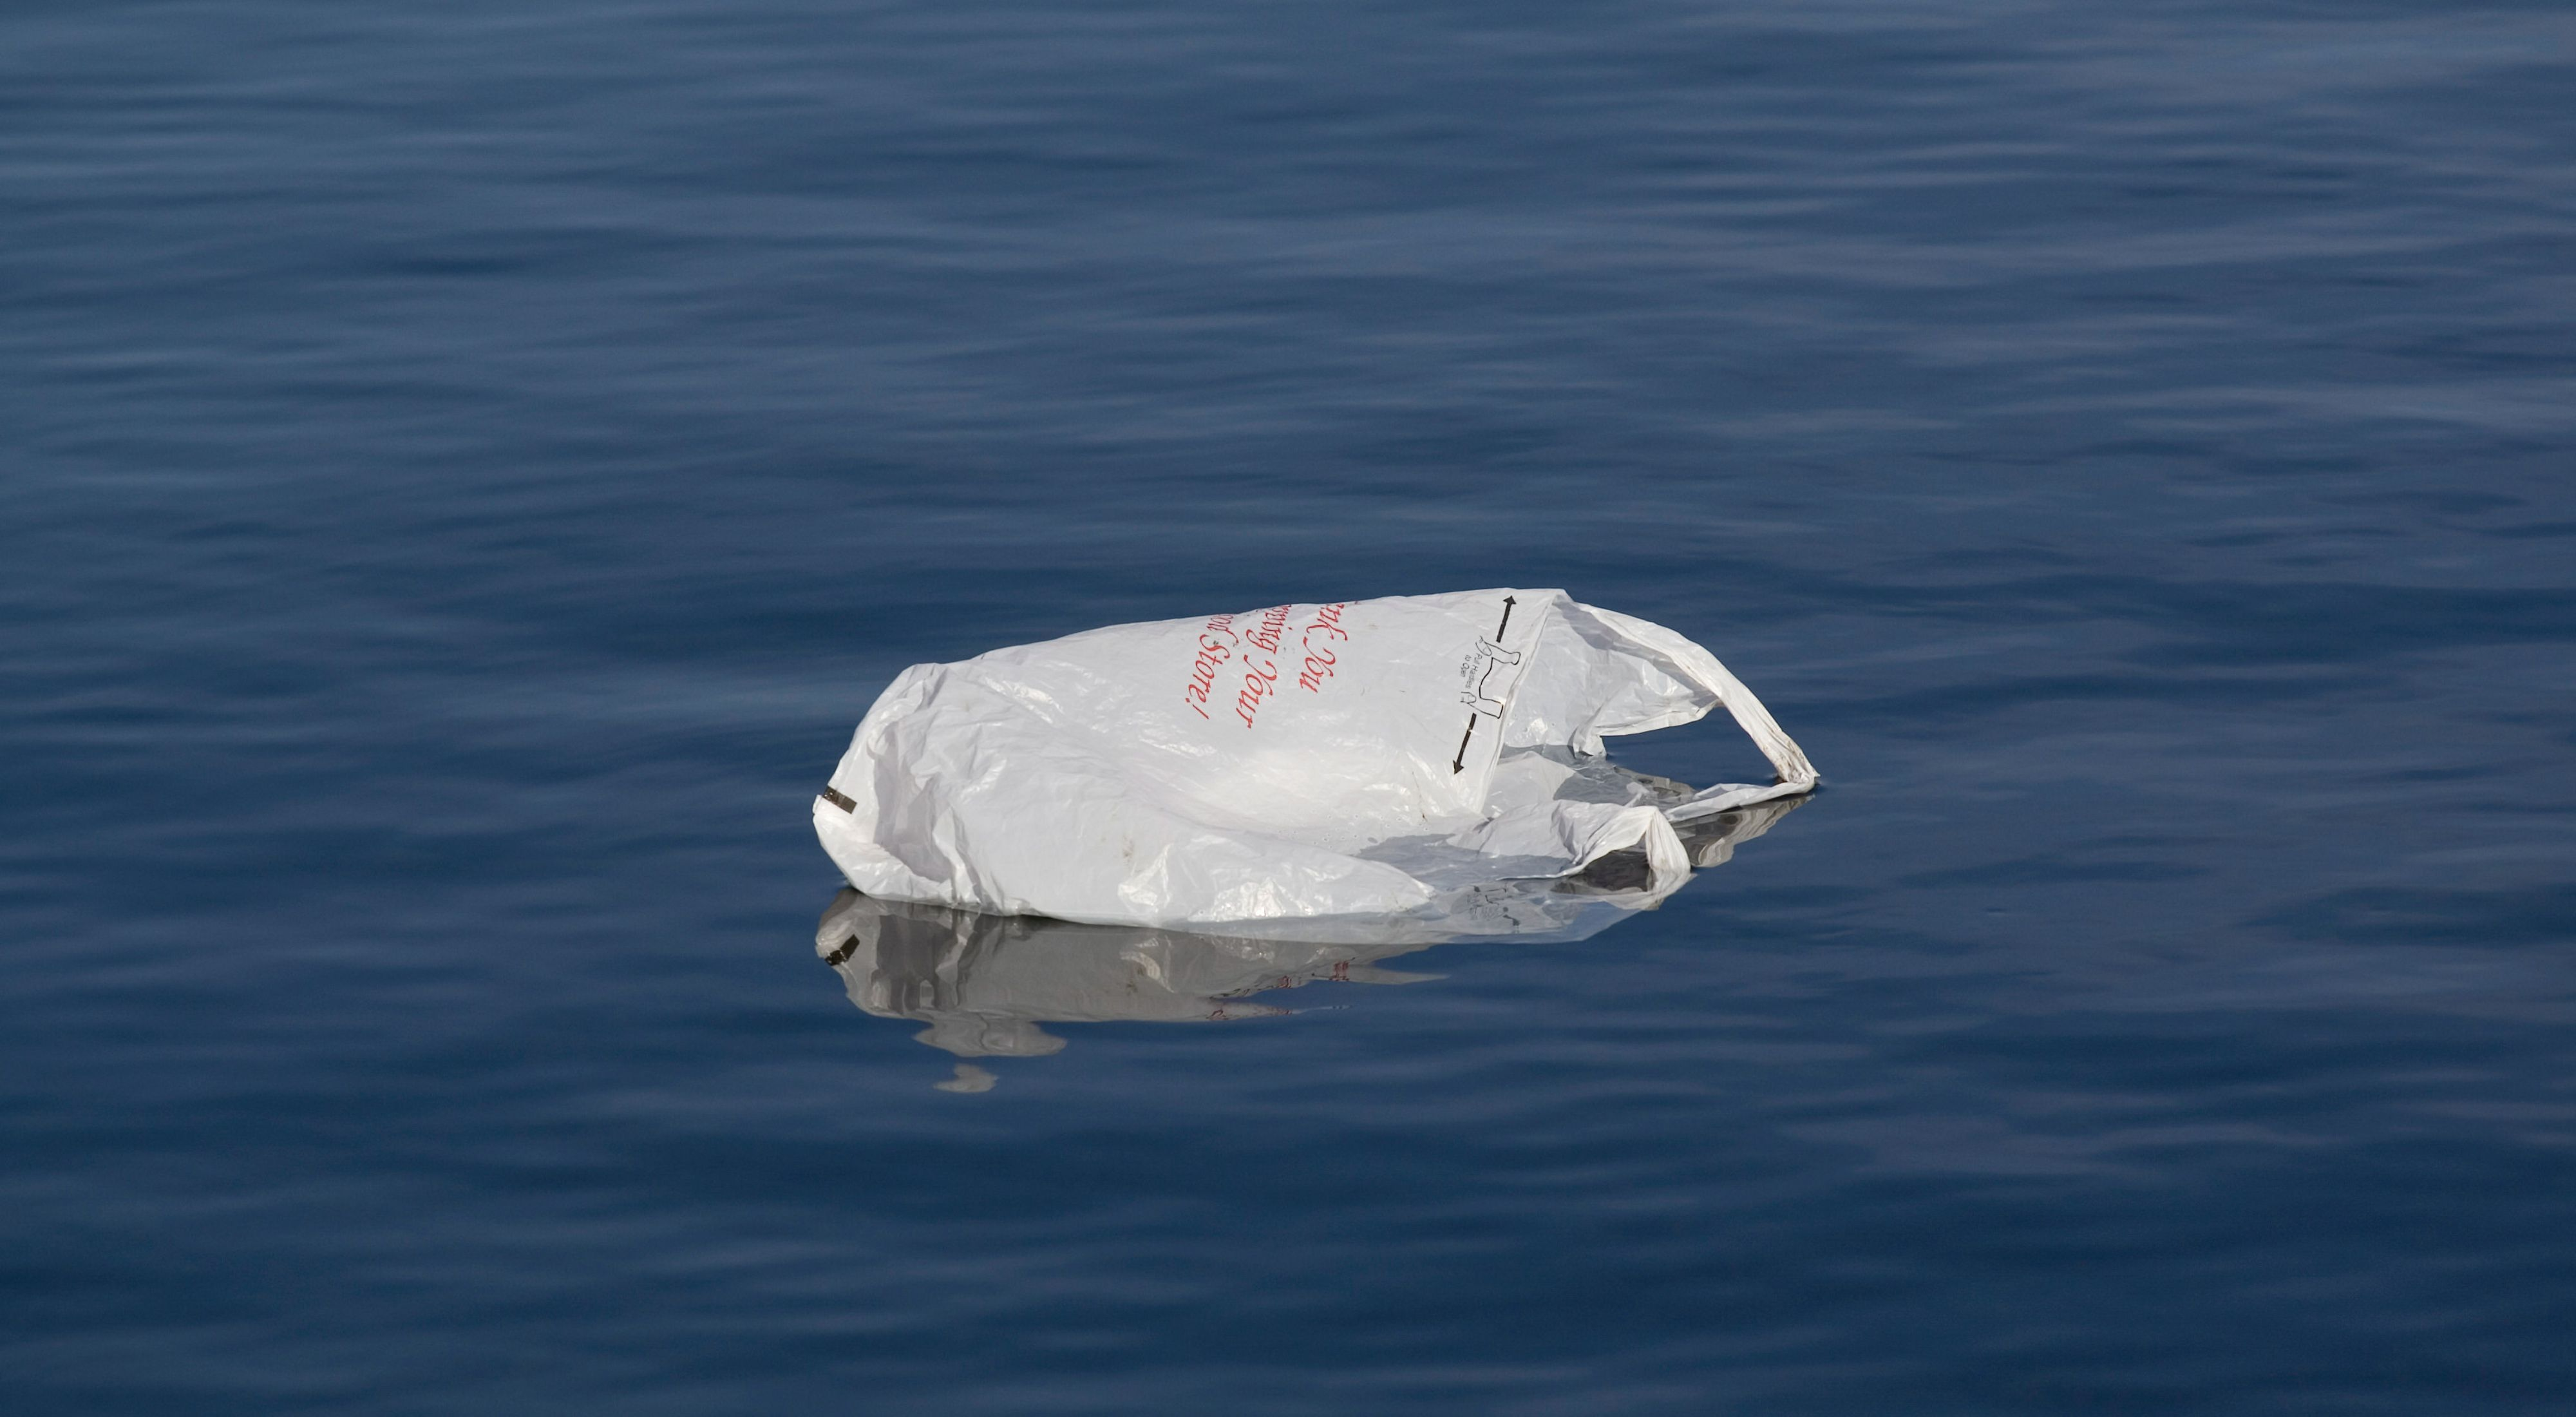 A plastic bag floating in water.